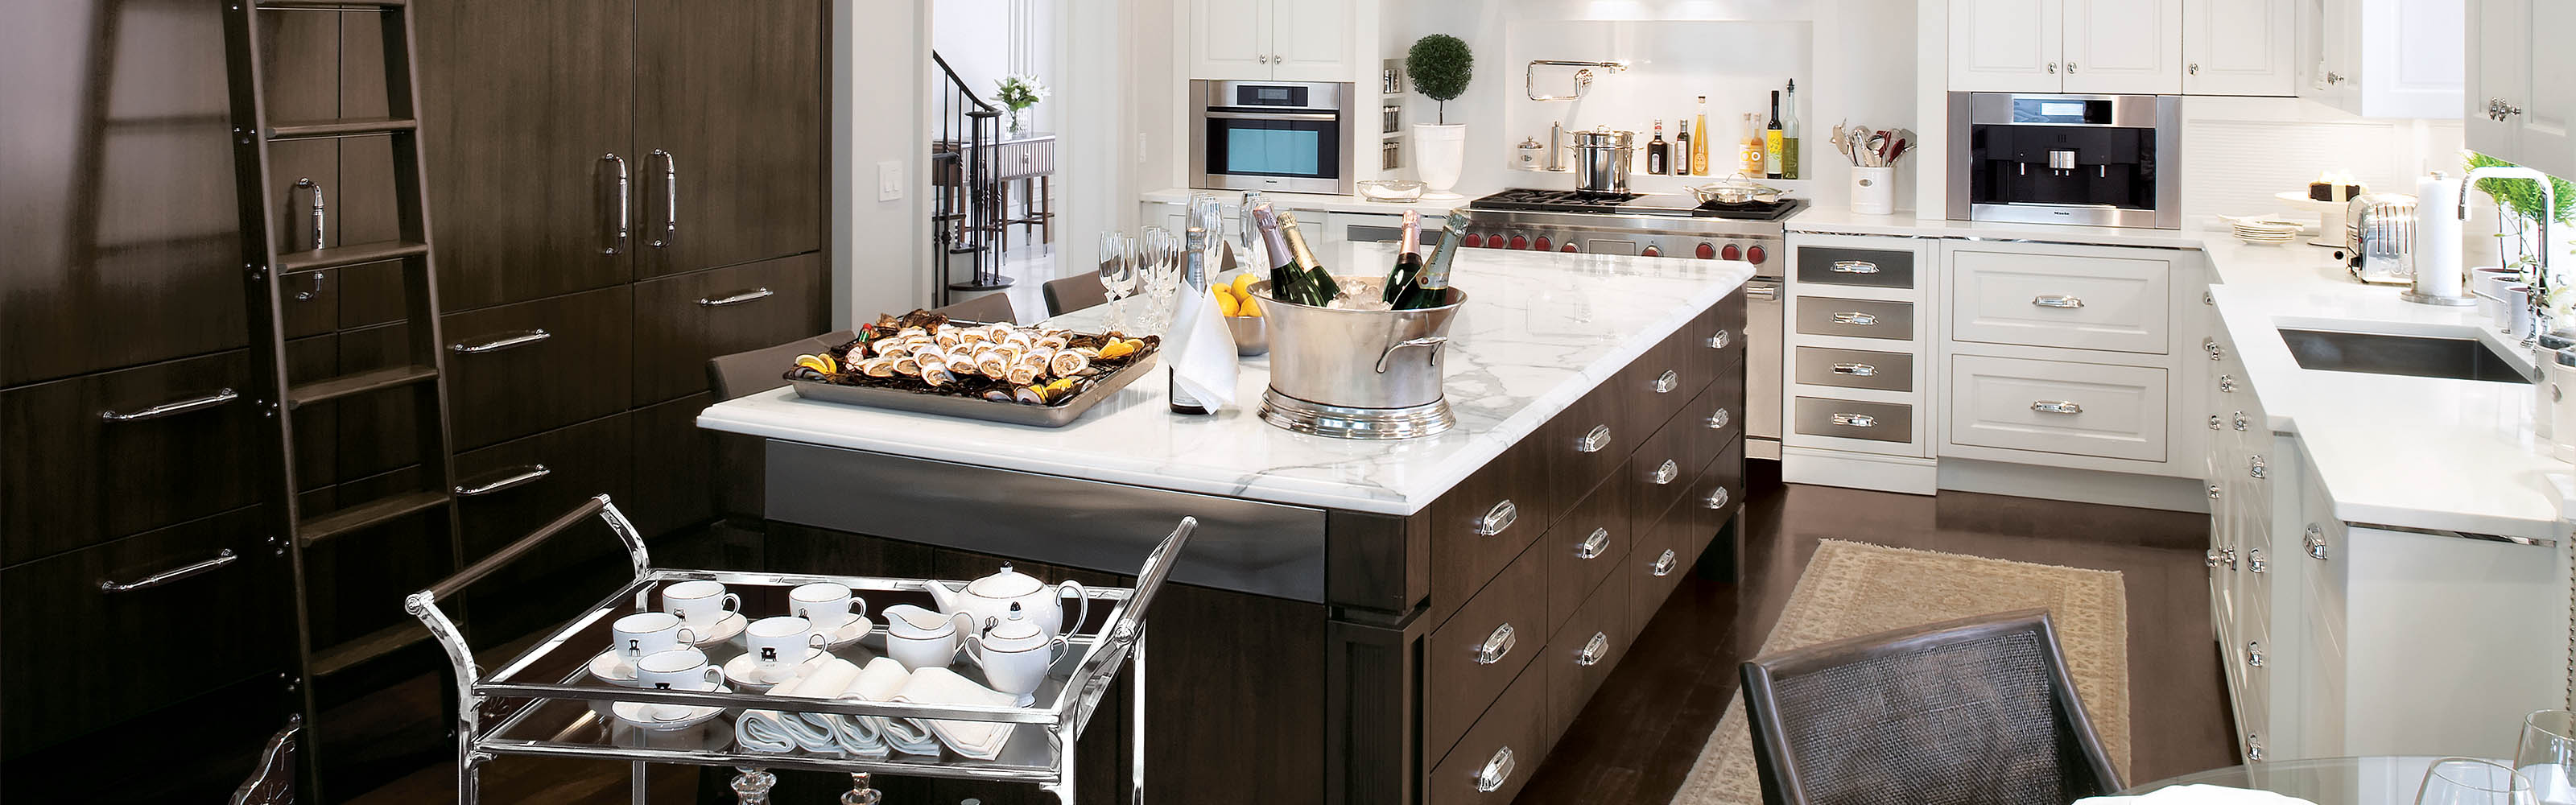 Downsview Kitchens - Design Center of the Americas